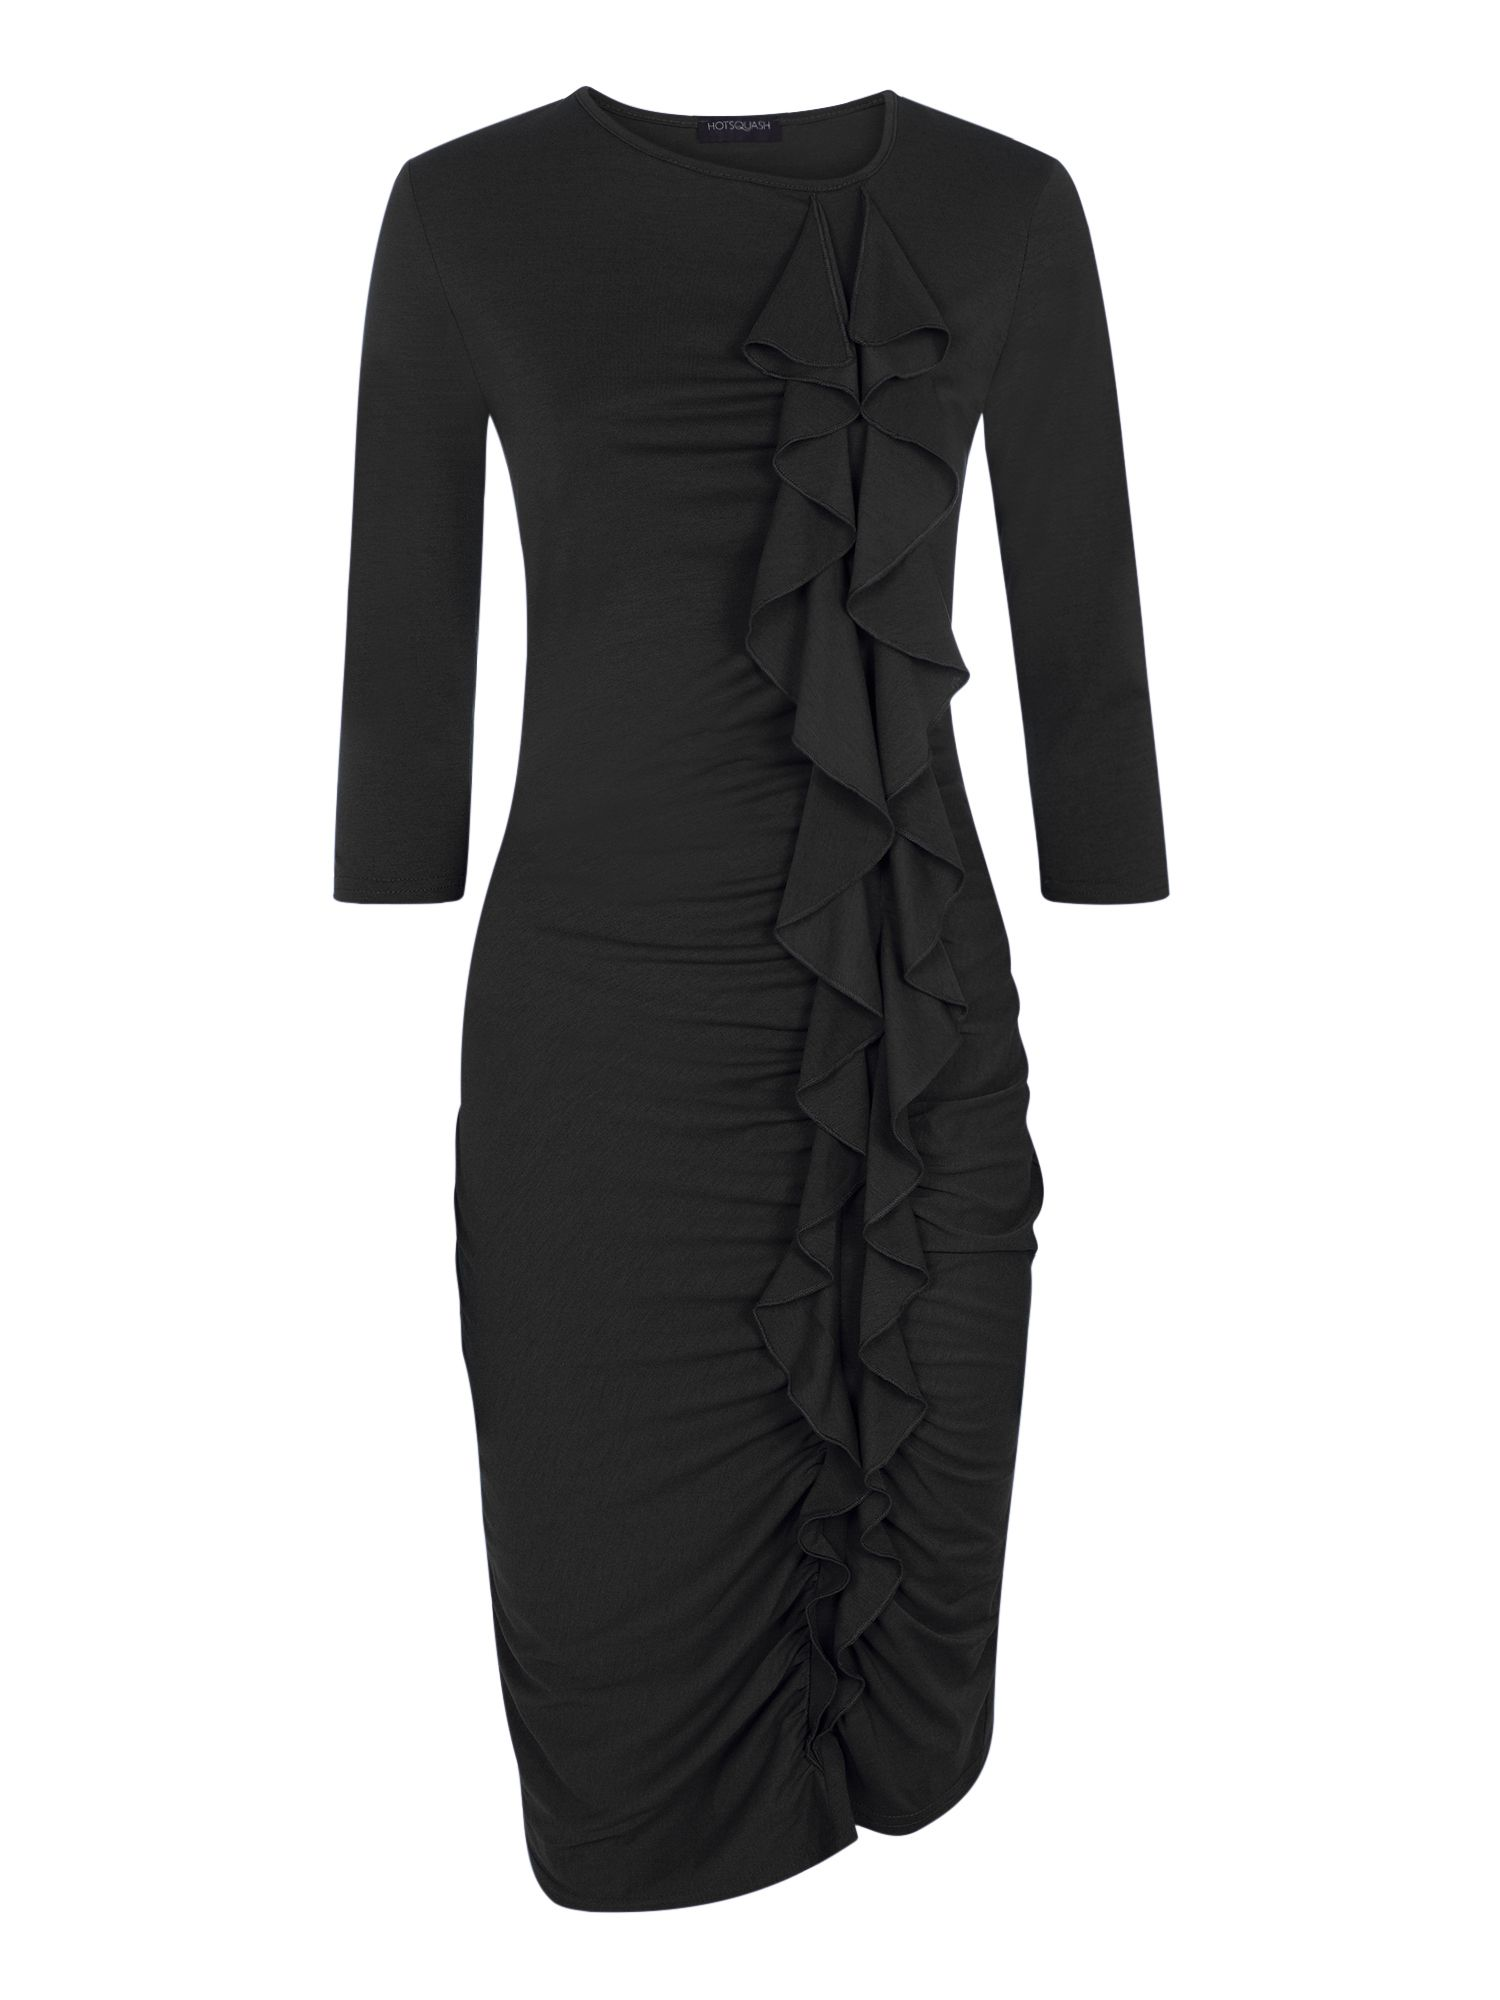 HotSquash Long sleeved dress with frill detail, Black